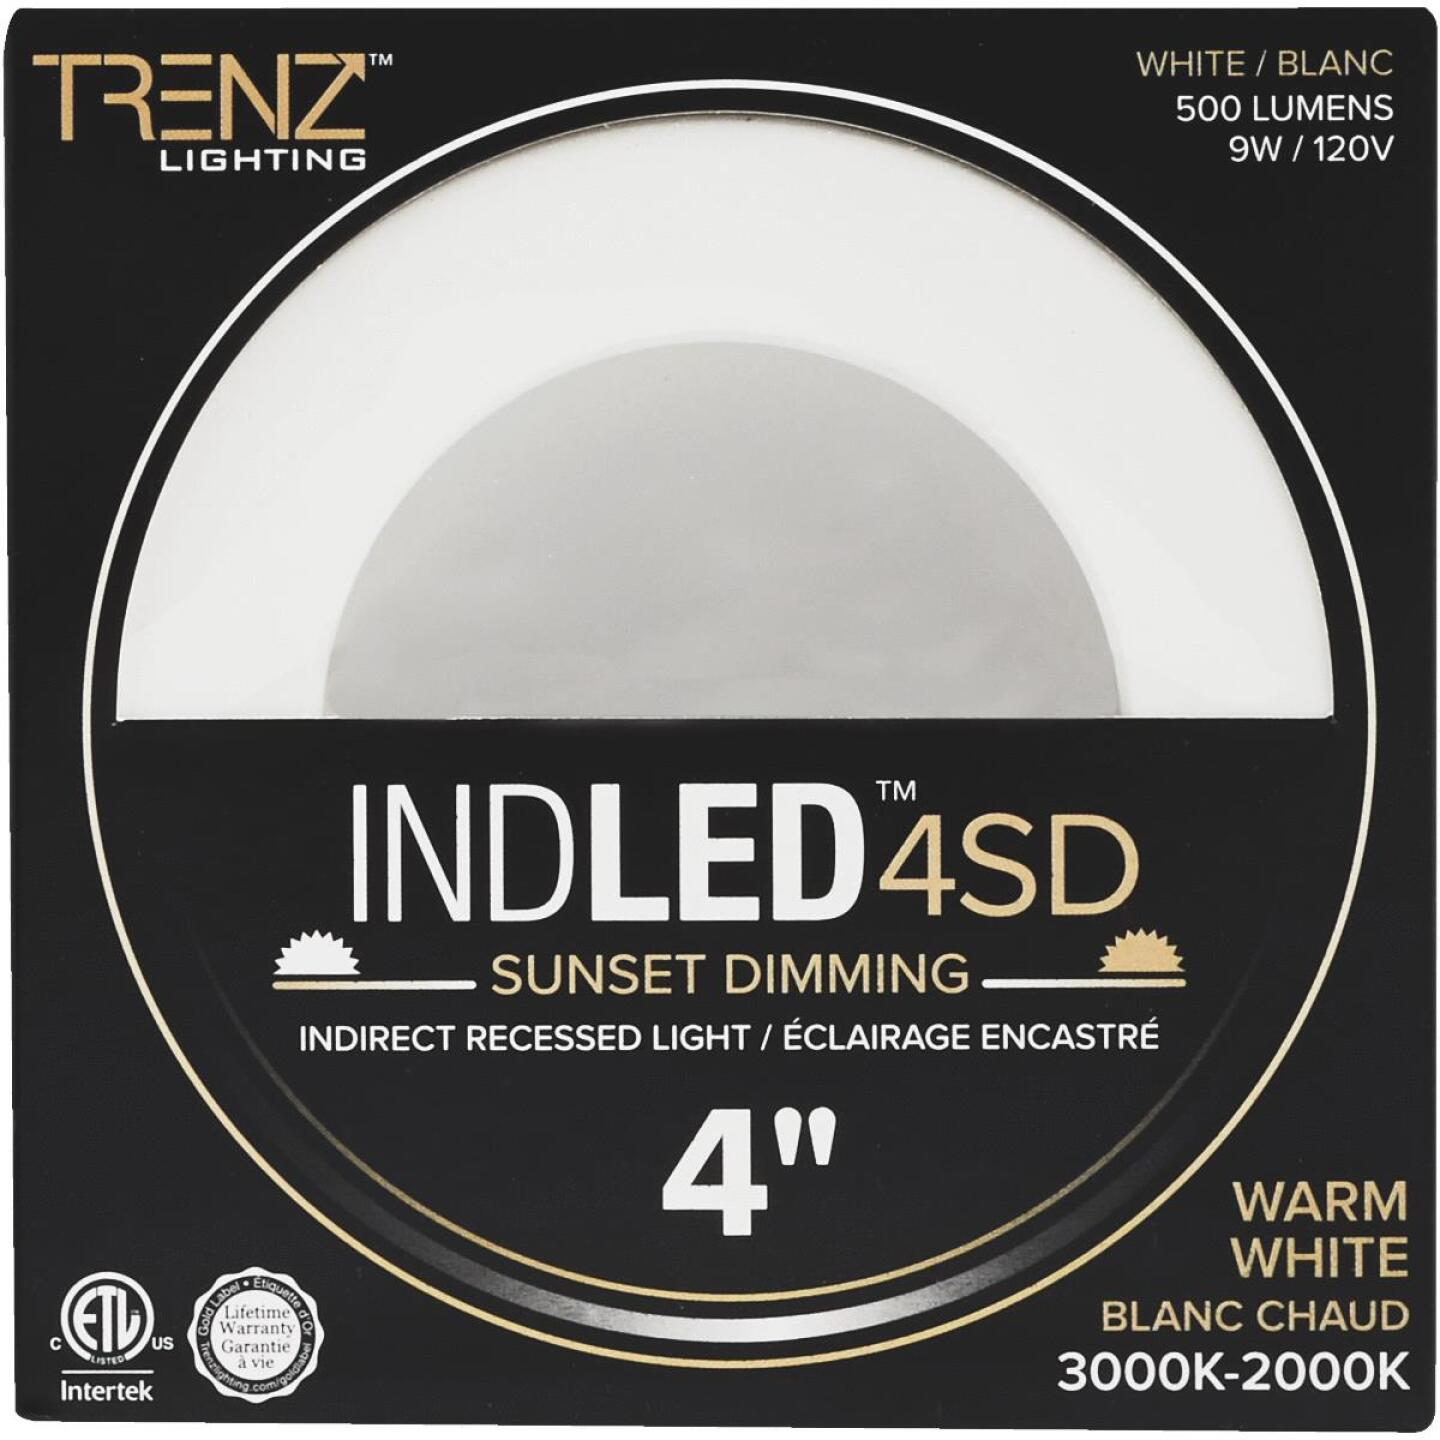 Liteline Trenz ThinLED 4 In. New Construction/Remodel IC White 500 Lm. Sunset Dimming Indirect Recessed Light Kit Image 2